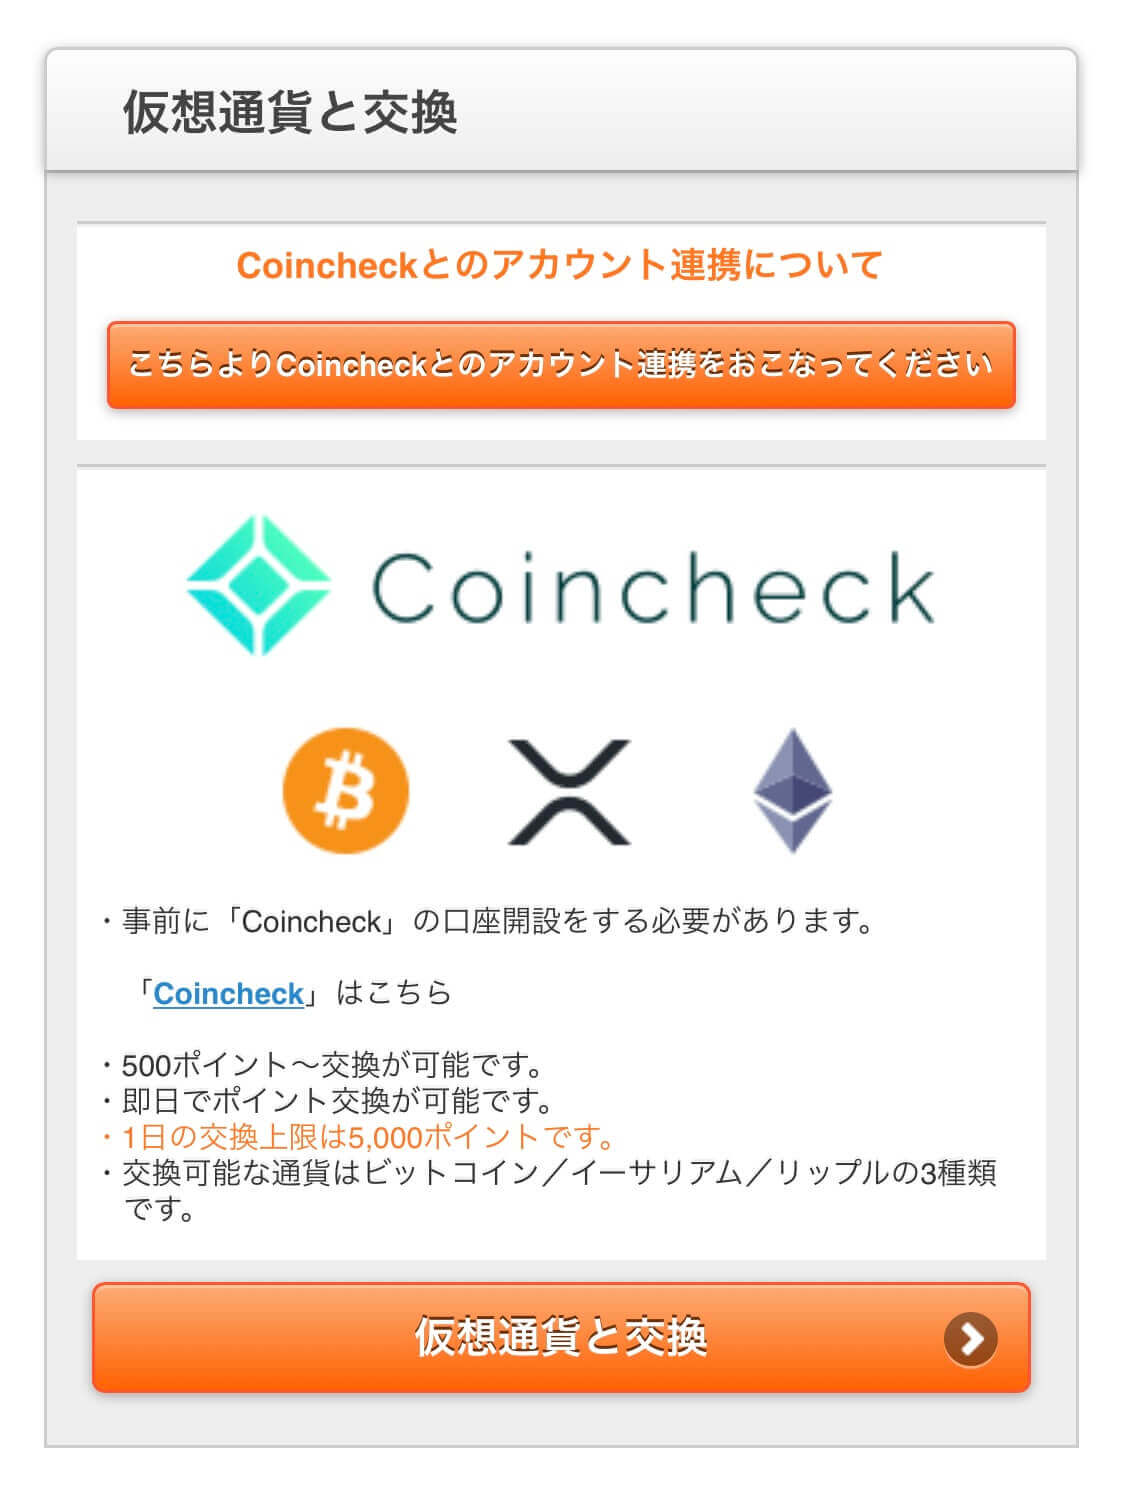 Coincheck(仮想通貨)と交換